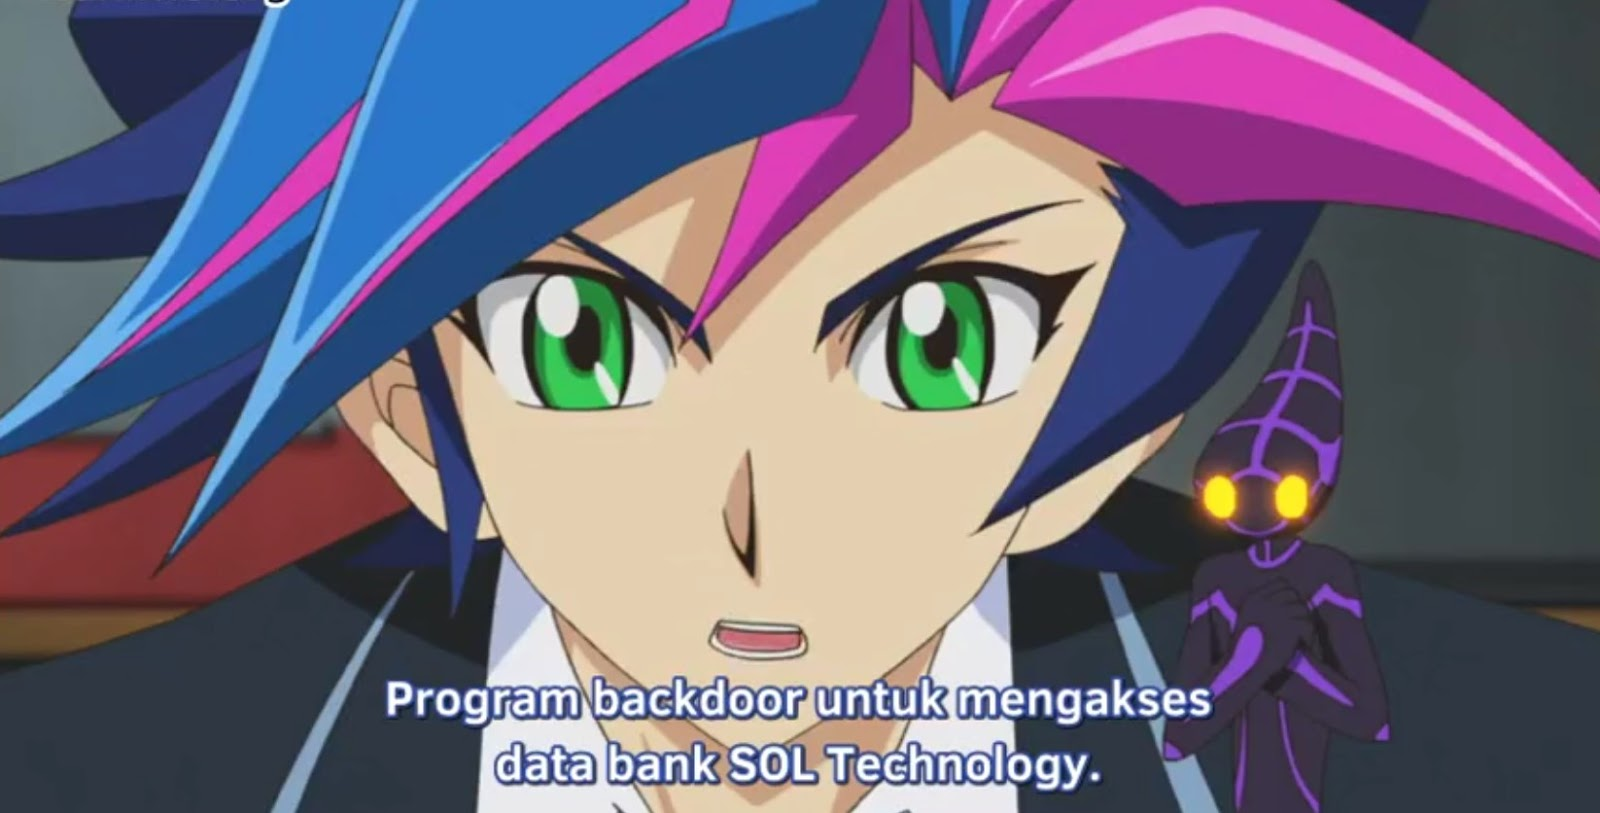 yu-gi-oh! vrains episode 14 subtitle indonesia - black avelic